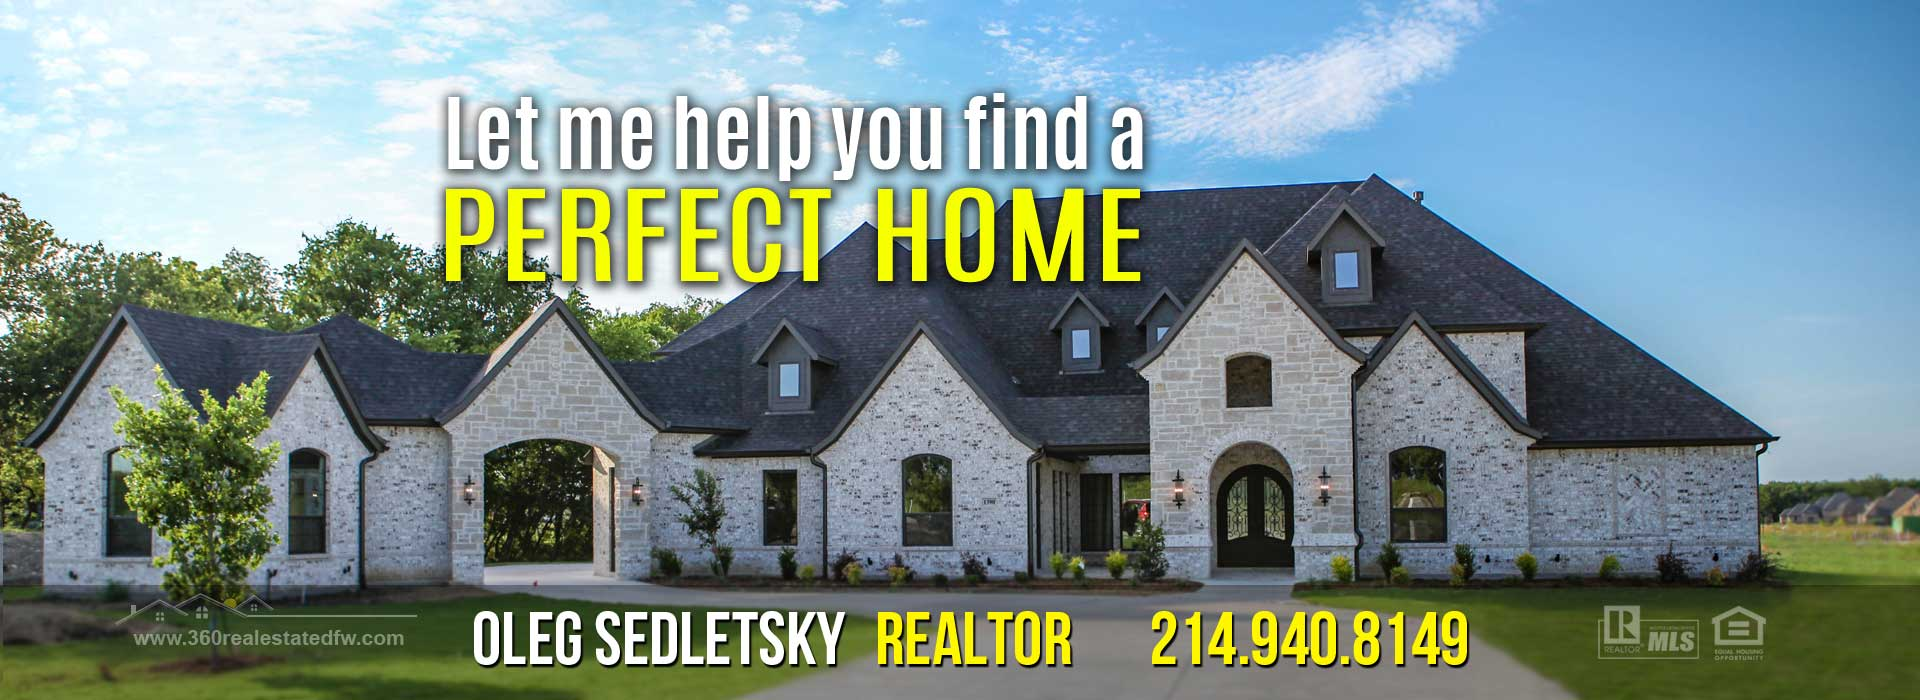 Dallas-Fort Worth Realtor - 214.940.8149 - Get Incentives when you buy a Home in the Dallas-Fort Worth area